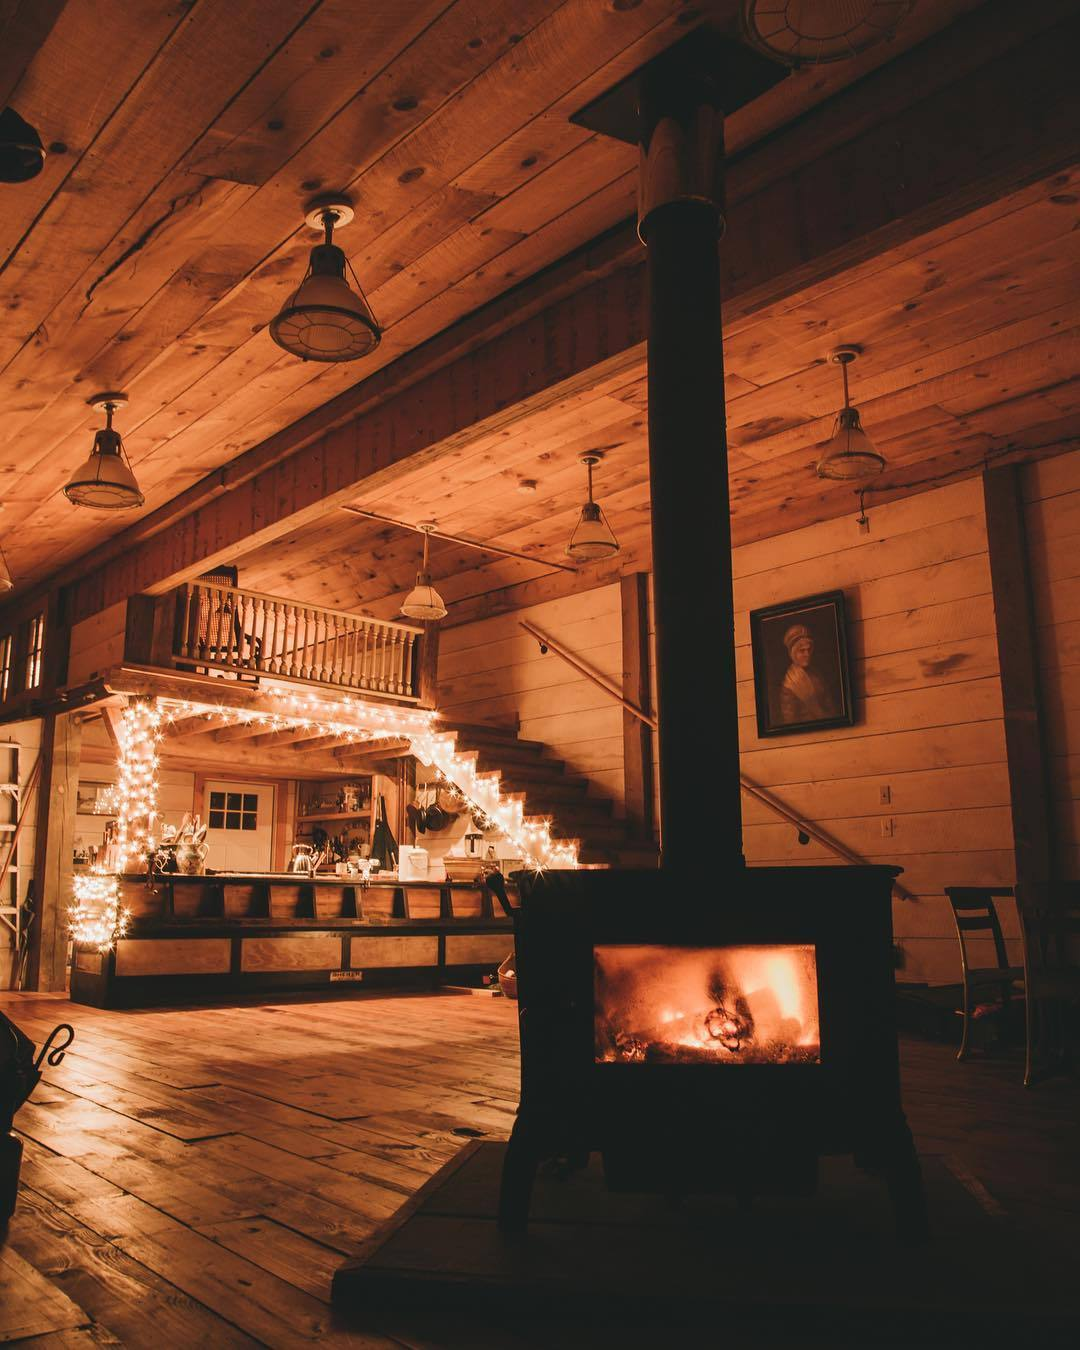 cozy night by the wood burning stove